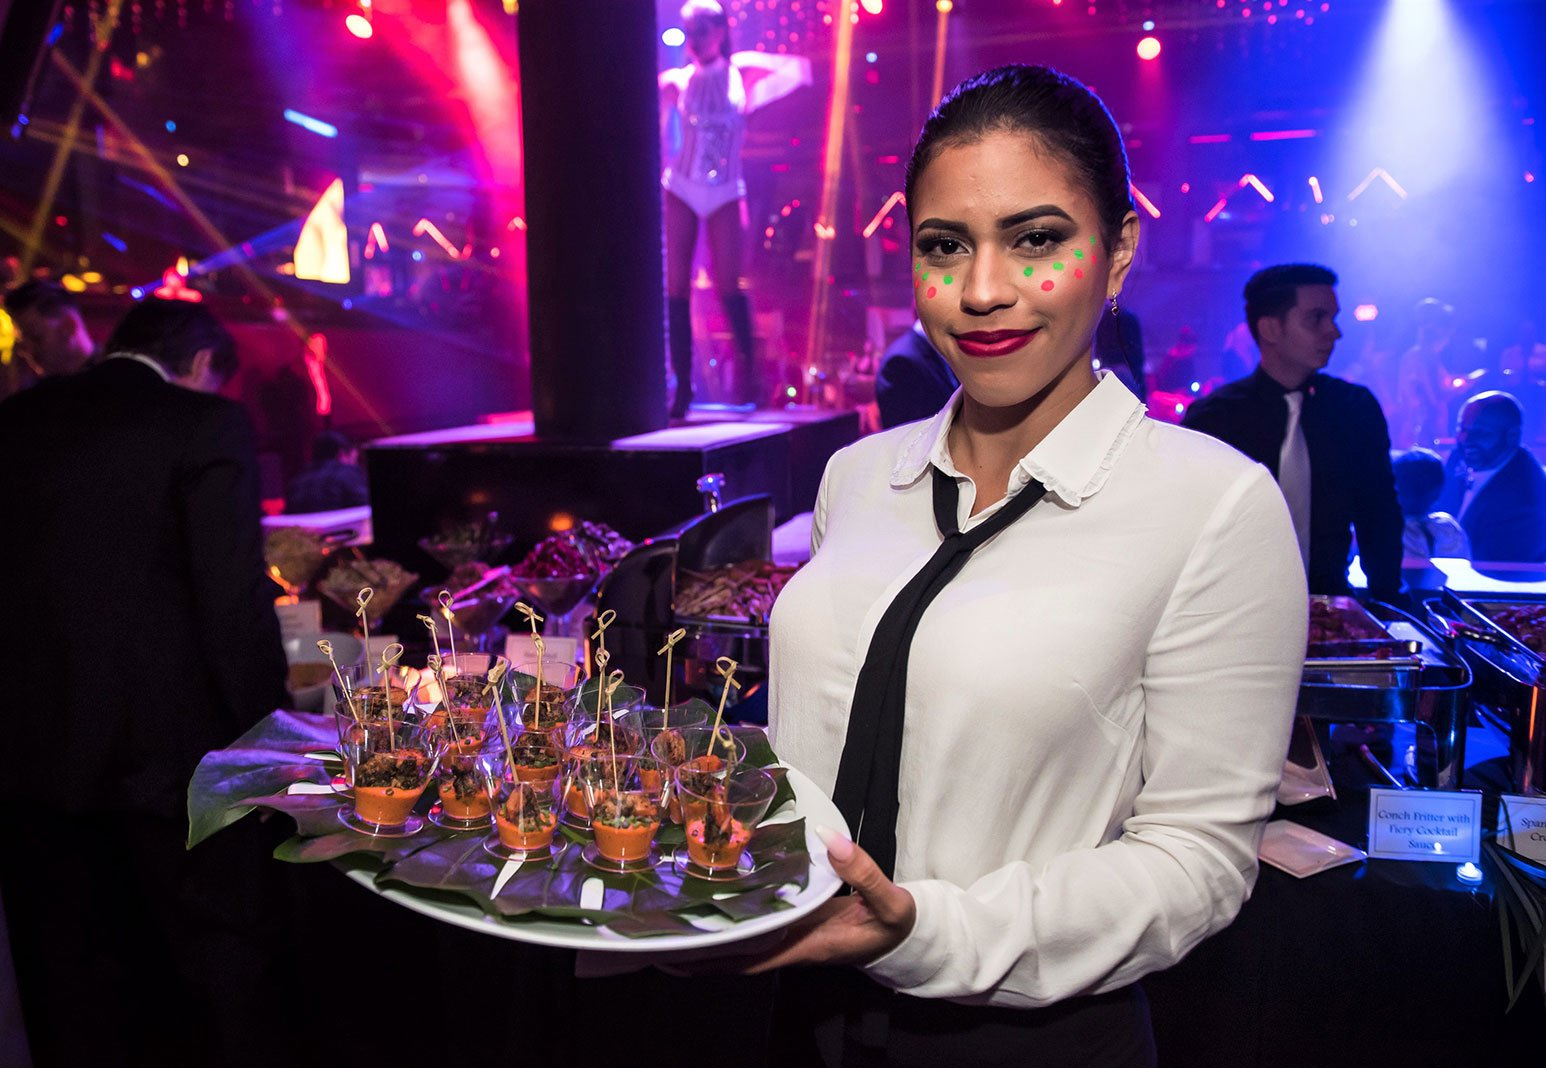 story nightclub catering | party venues in miami | party caterers miami